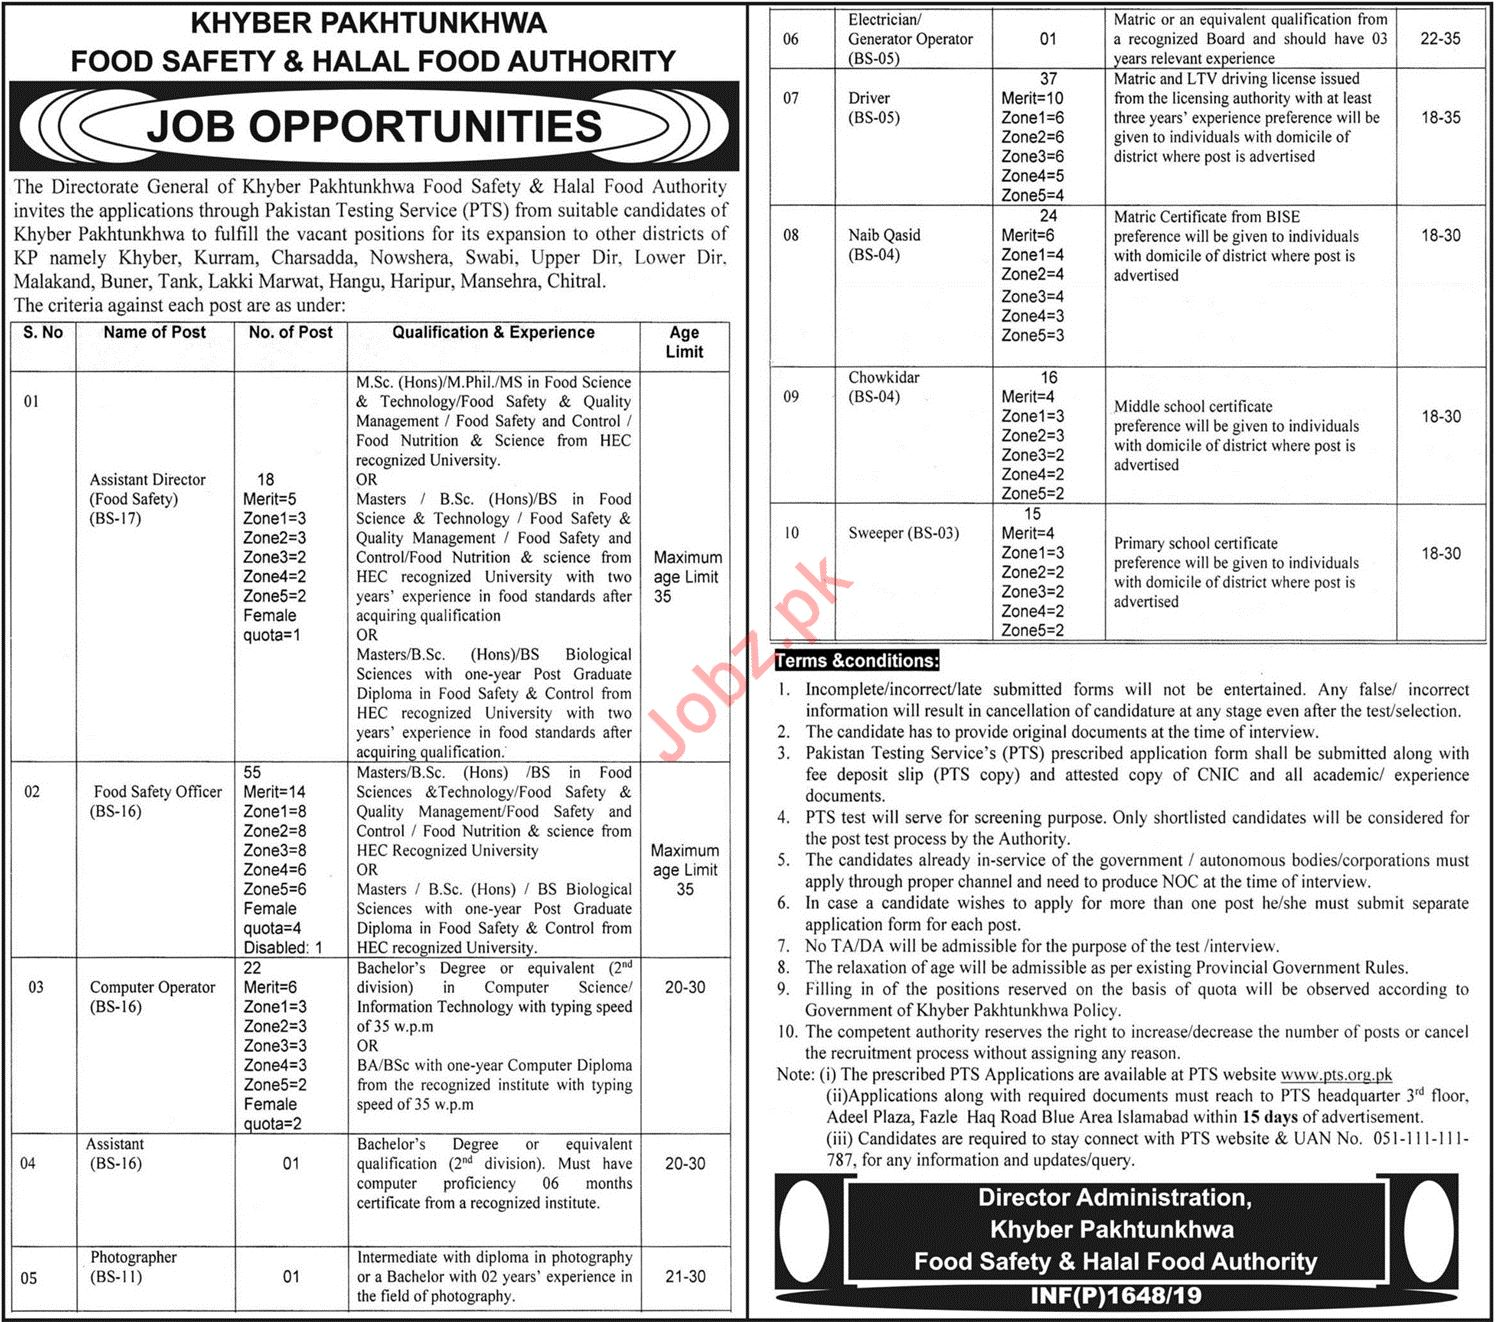 KP Food Safety & Halal Food Authority Jobs 2019 Through PTS